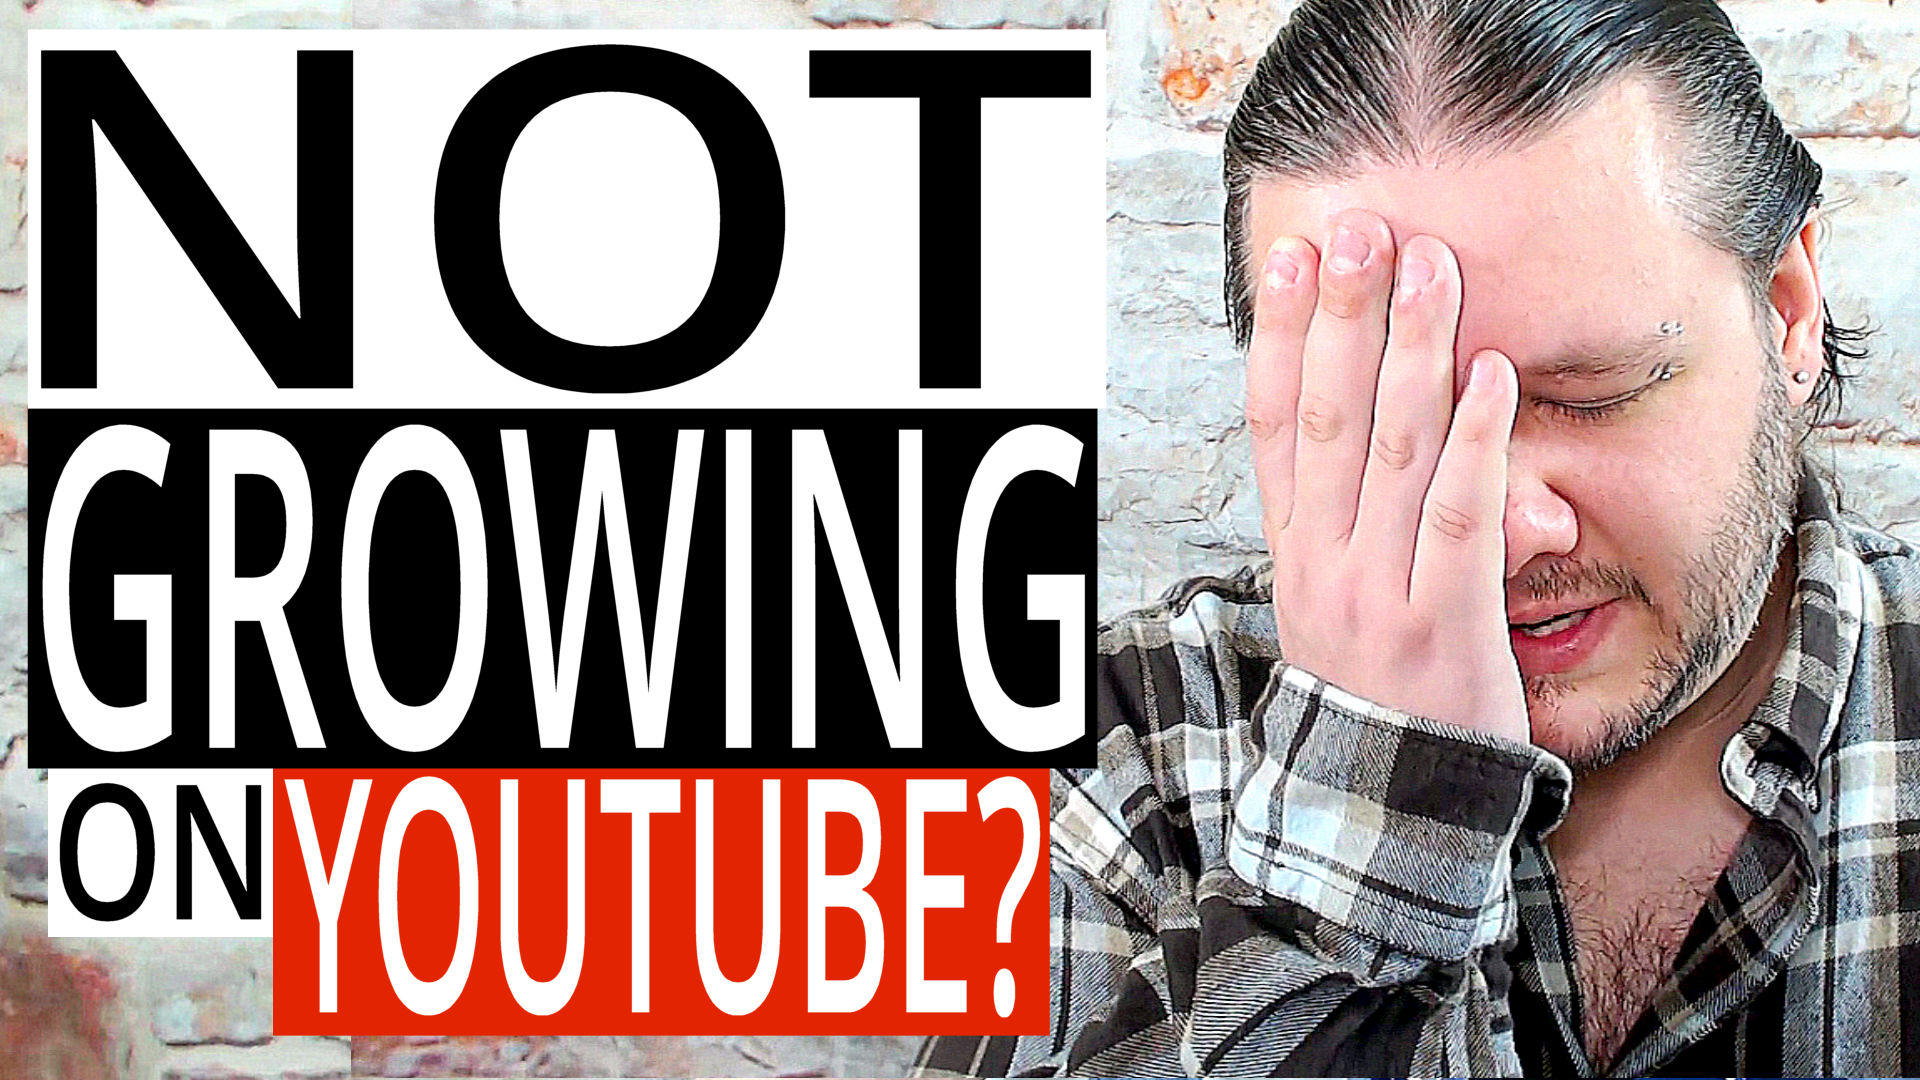 alanspicer,how to grow on youtube,my channel isnt growing,grow your youtube channel,my youtube channel isnt growing,youtuber mistakes to avoid,youtuber mistakes,how to grow your youtube channel,growing on youtube,youtube growth,growing a youtube channel,why you arent growing on youtube,Why YOU Are Not Growing On YouTube,not growing on youtube,why you are not growing,not growing on youtube 2018,growing on youtube 2018,grow on youtube,channel not growing,youtube